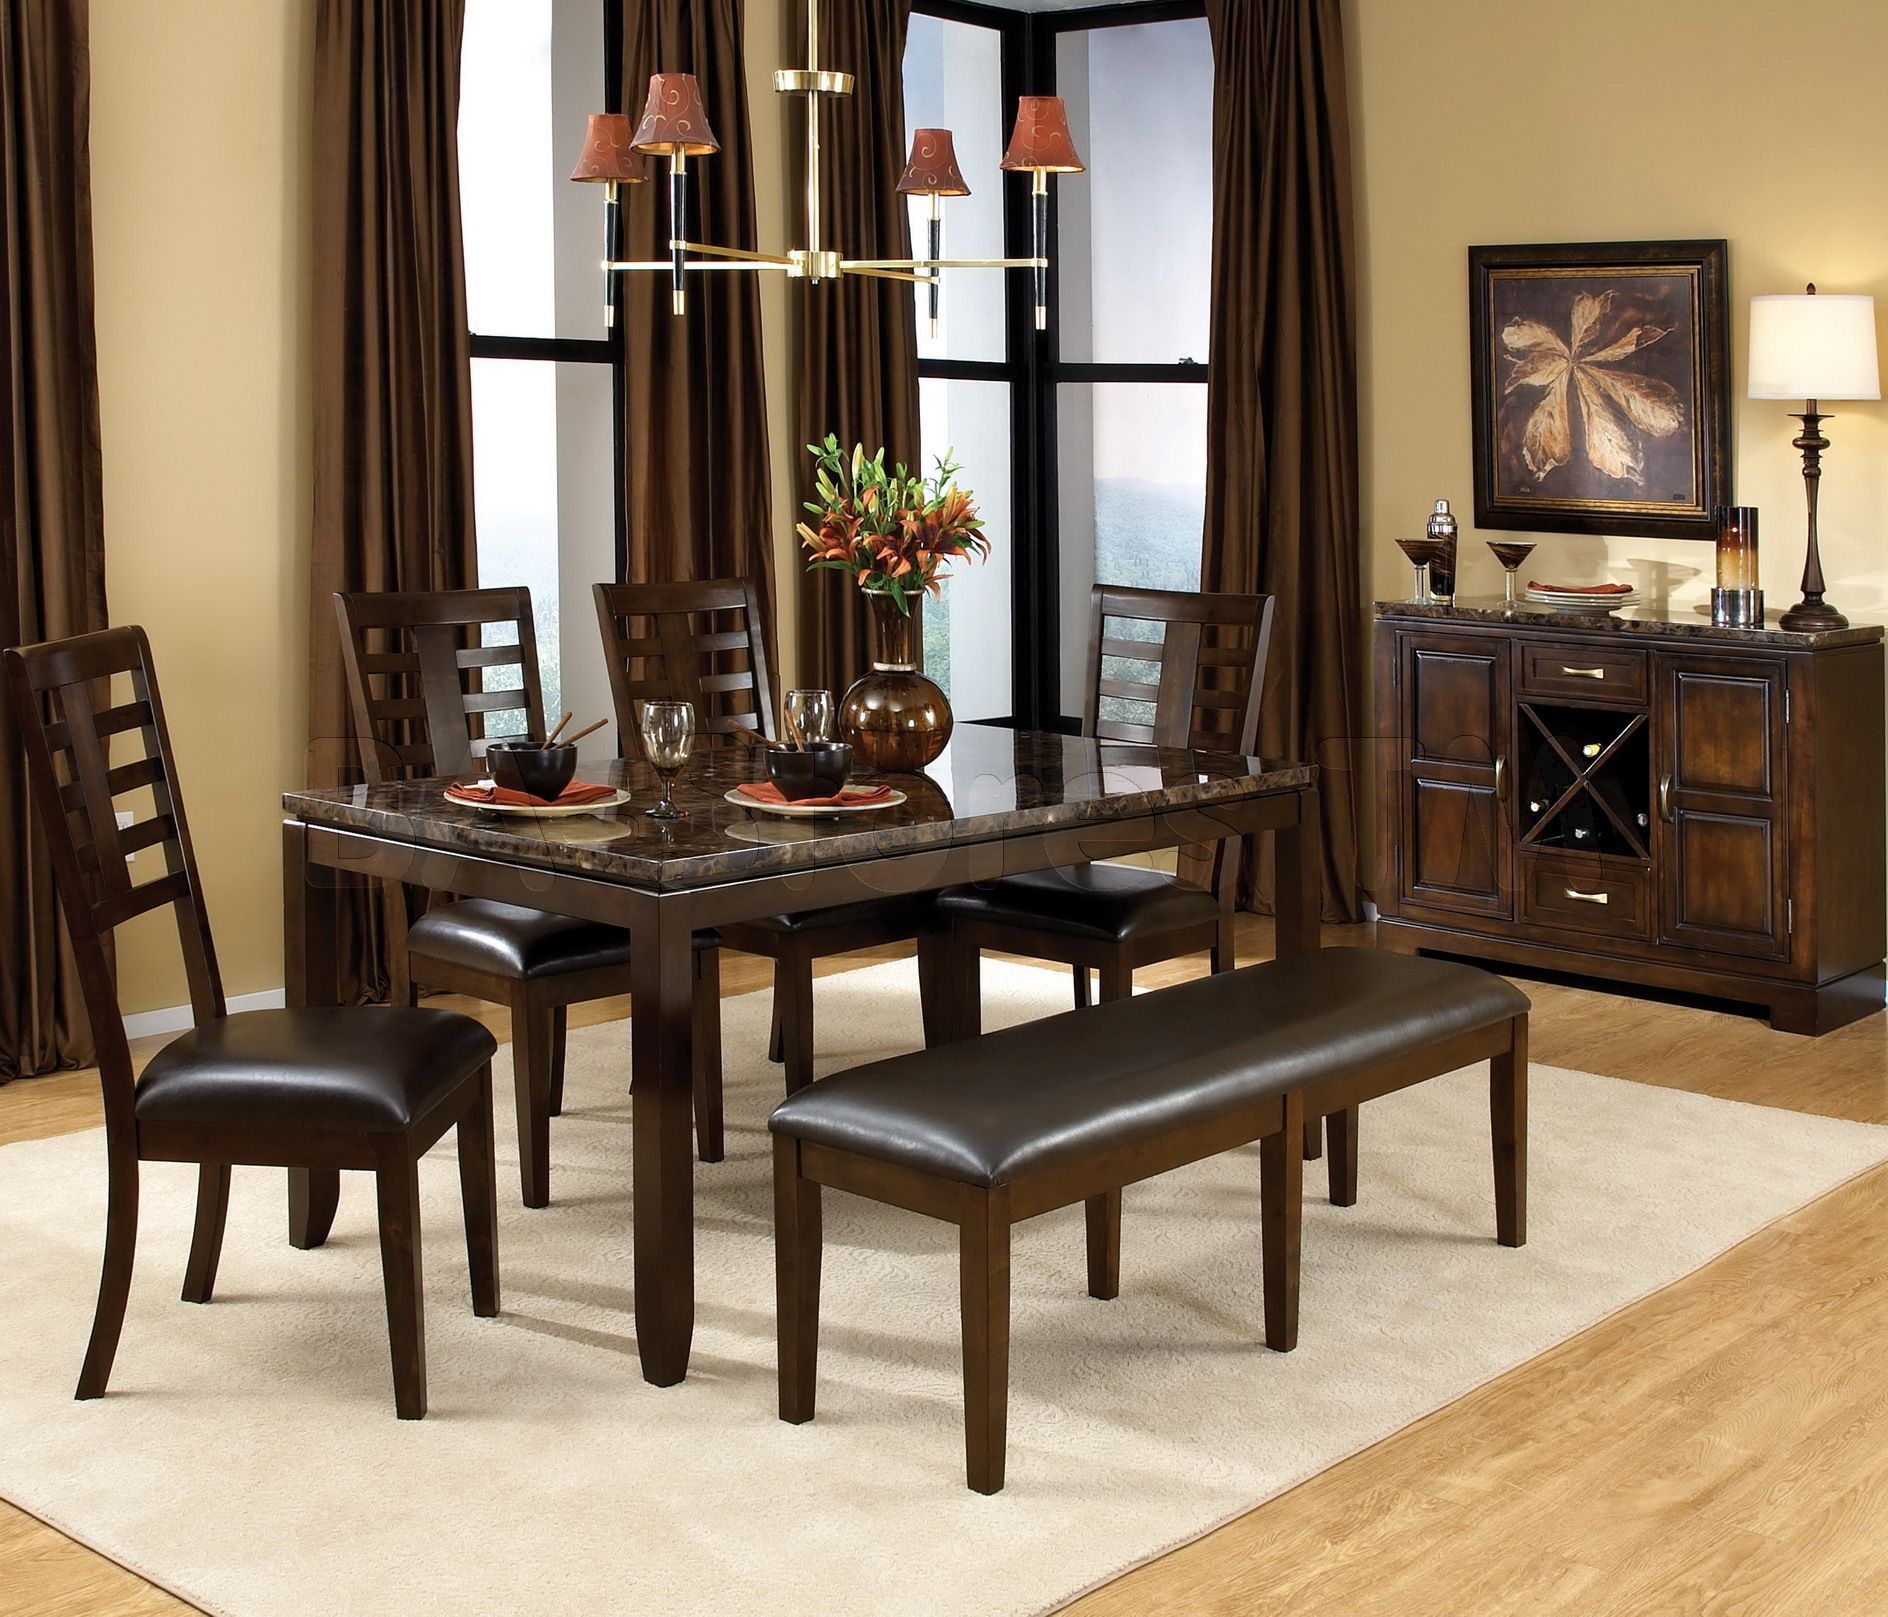 Good Awesome Dining Room Table With Bench Brown Curtains Of Dining Room With Table Chair Benc Brown Dining Room Modern Dining Room Set Cheap Dining Room Sets